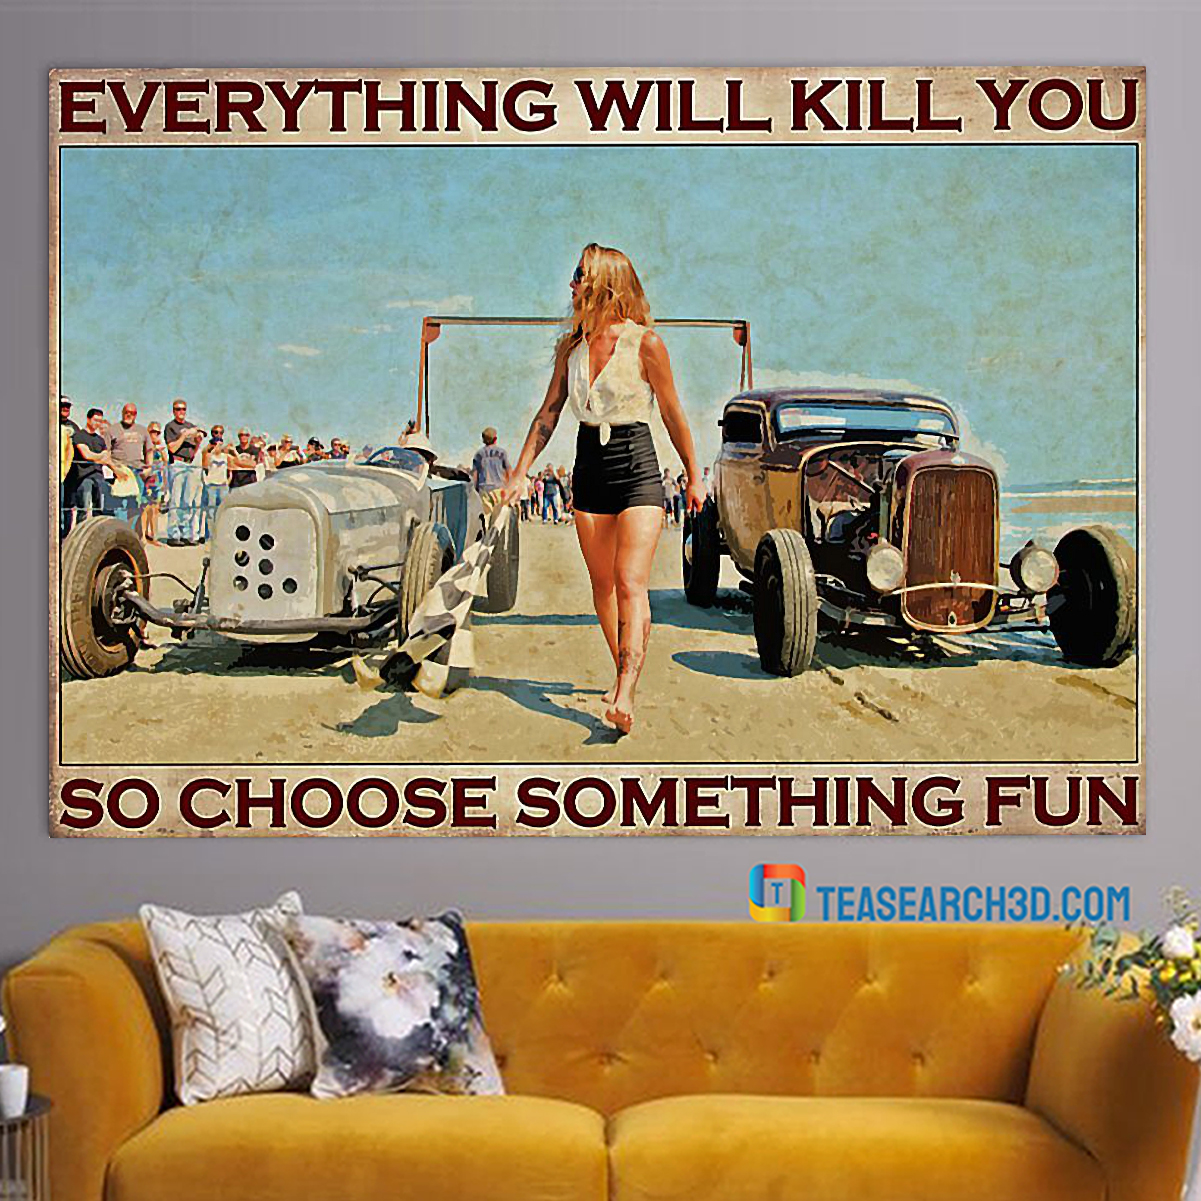 Hot rod drag racing street racing girl everything will kill you poster A3